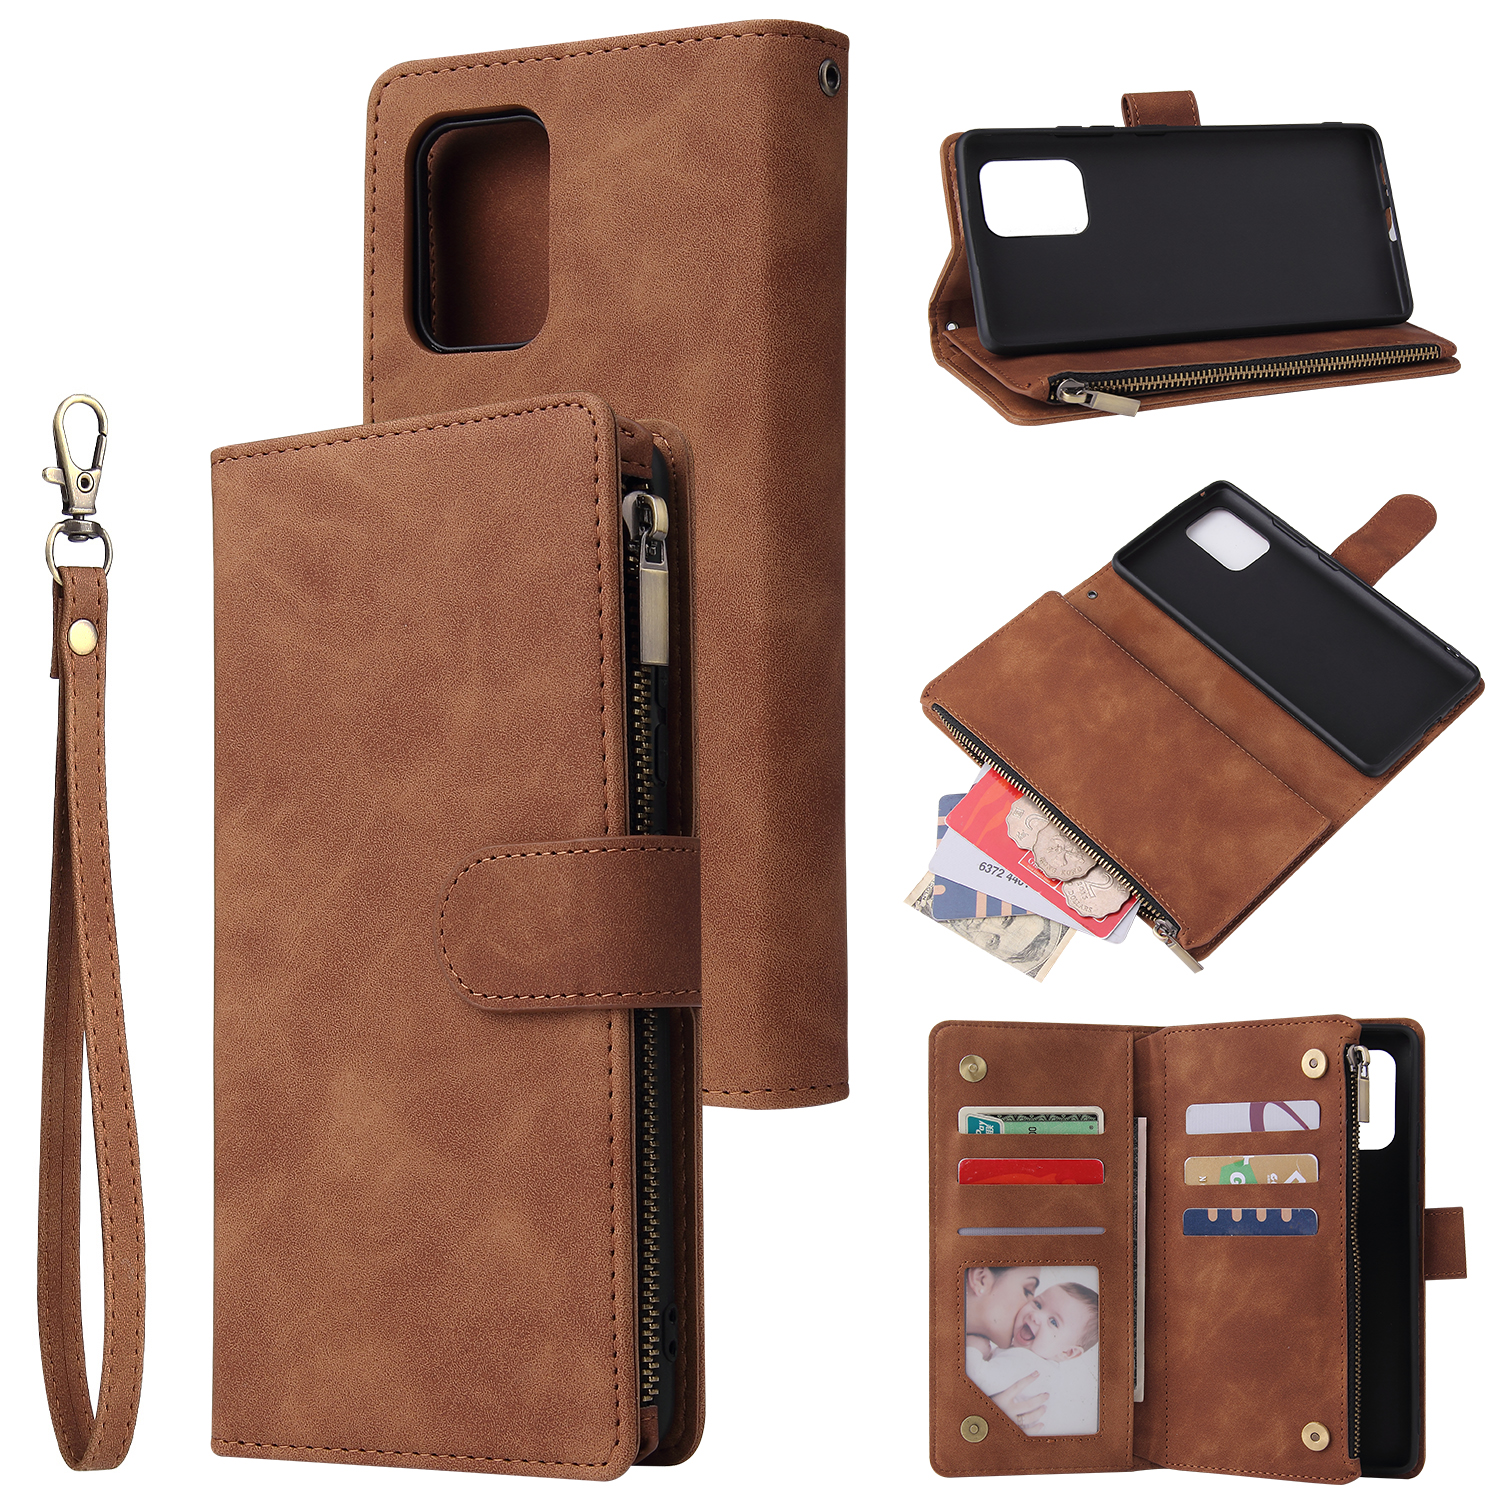 For Samsung S10 Lite 2020 Mobile Phone Case Wallet Design Zipper Closure Overall Protection Cellphone Cover  4 brown